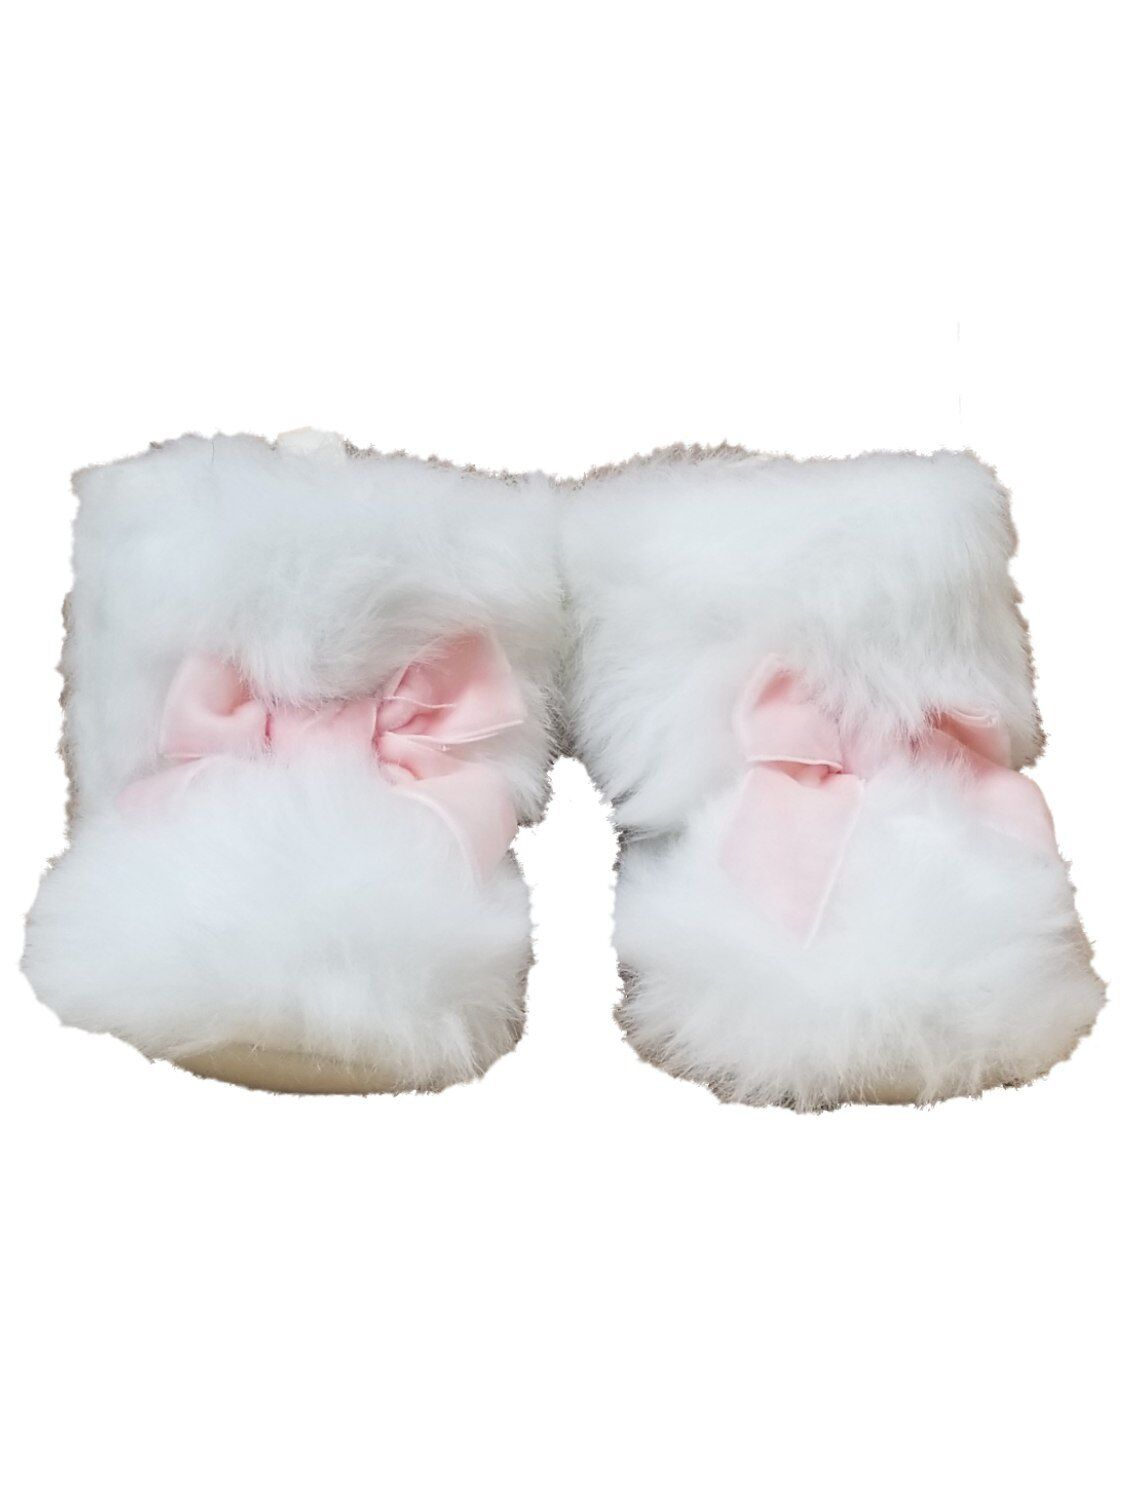 Infant Girls White Faux Fur Booties Pink Bow Slipper House Shoe Baby Boots